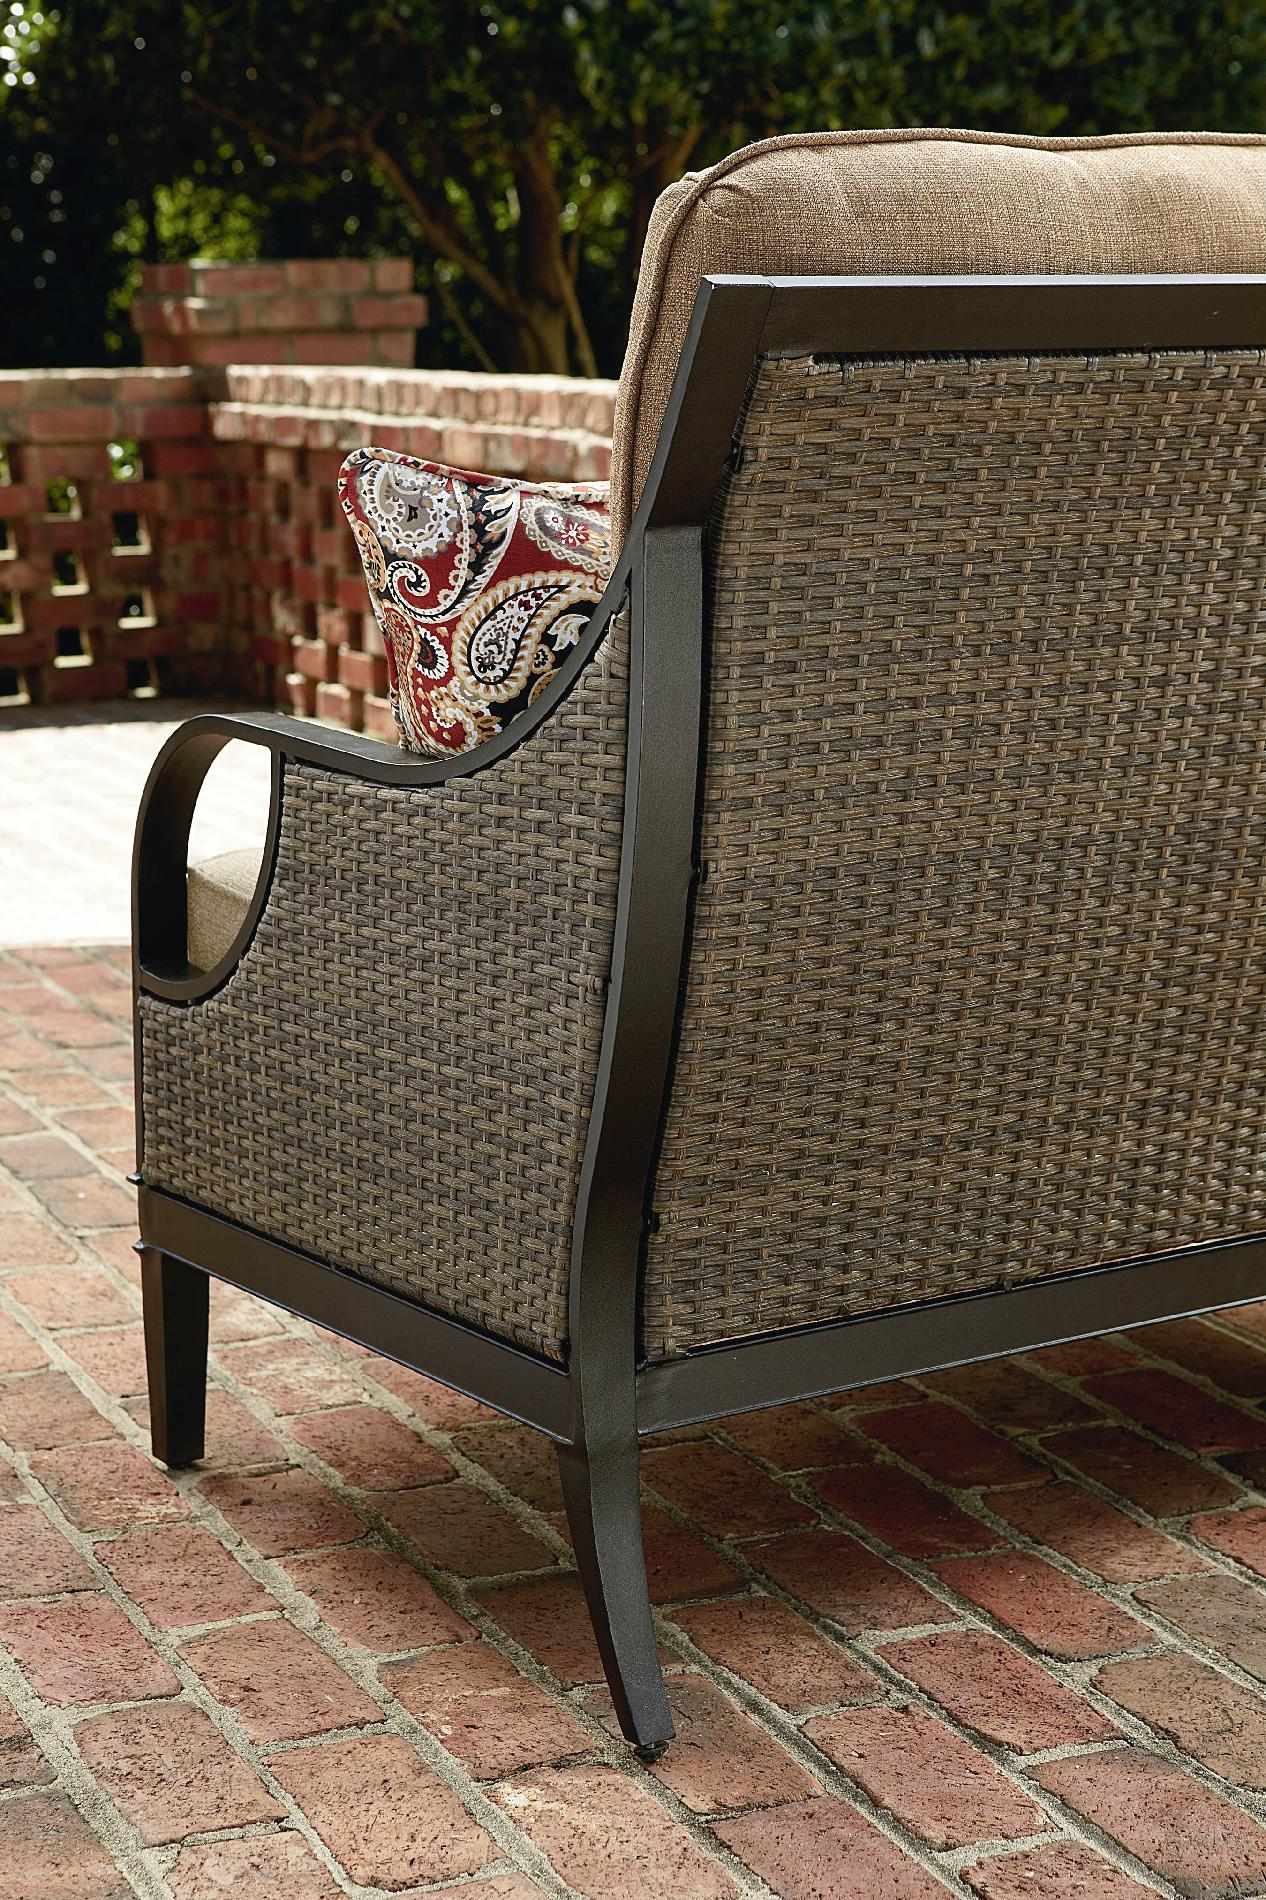 La-Z-Boy Outdoor Charlotte 4 Piece Seating Set *Limited Availability